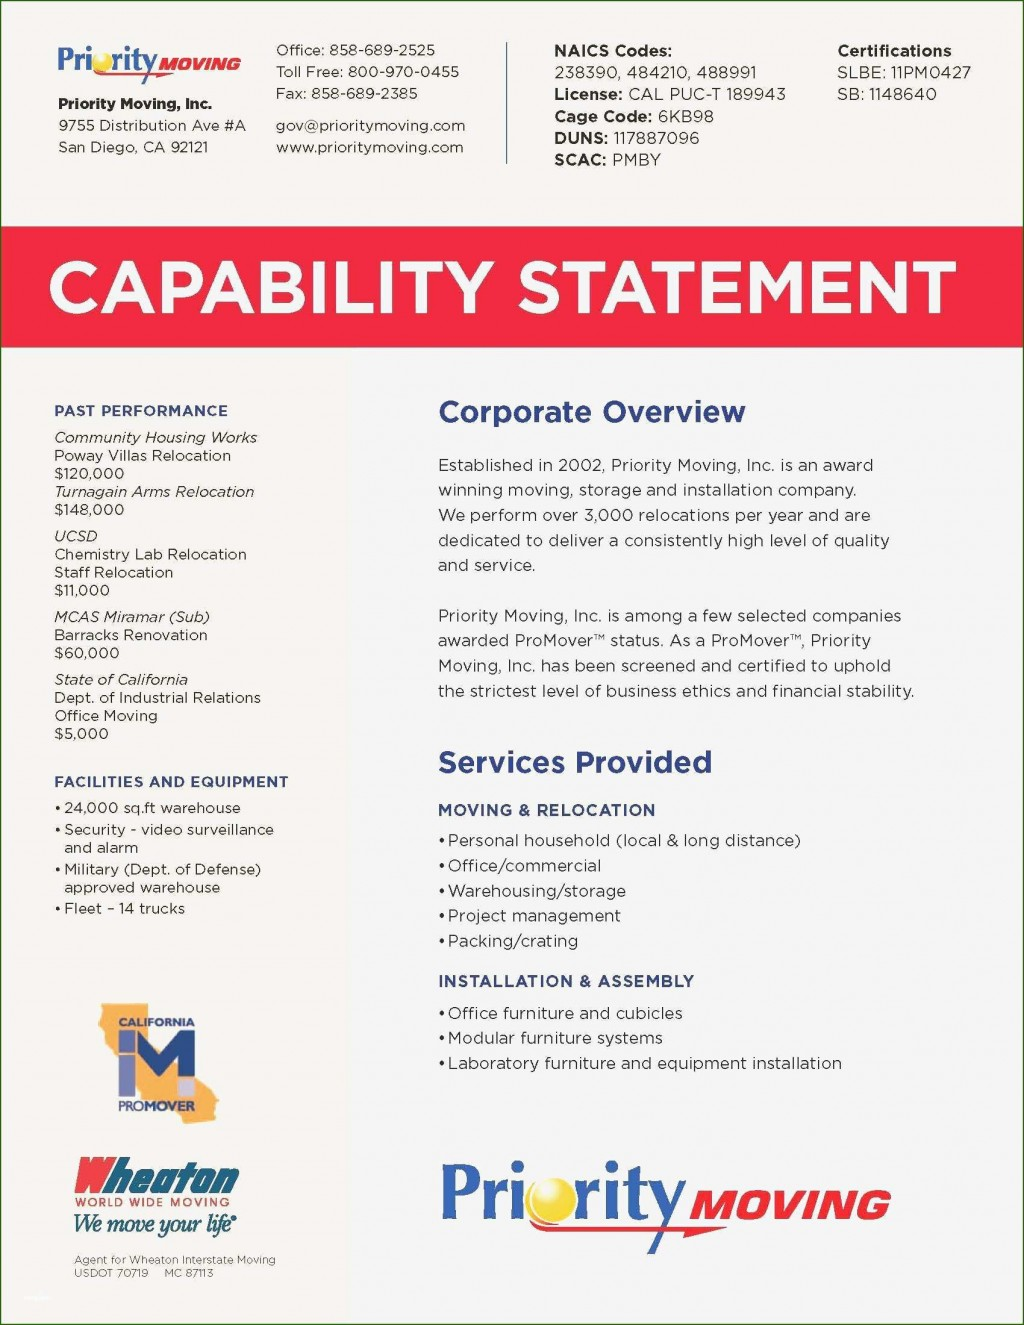 001 Sensational Capability Statement Template Word Doc Idea  Document FreeLarge